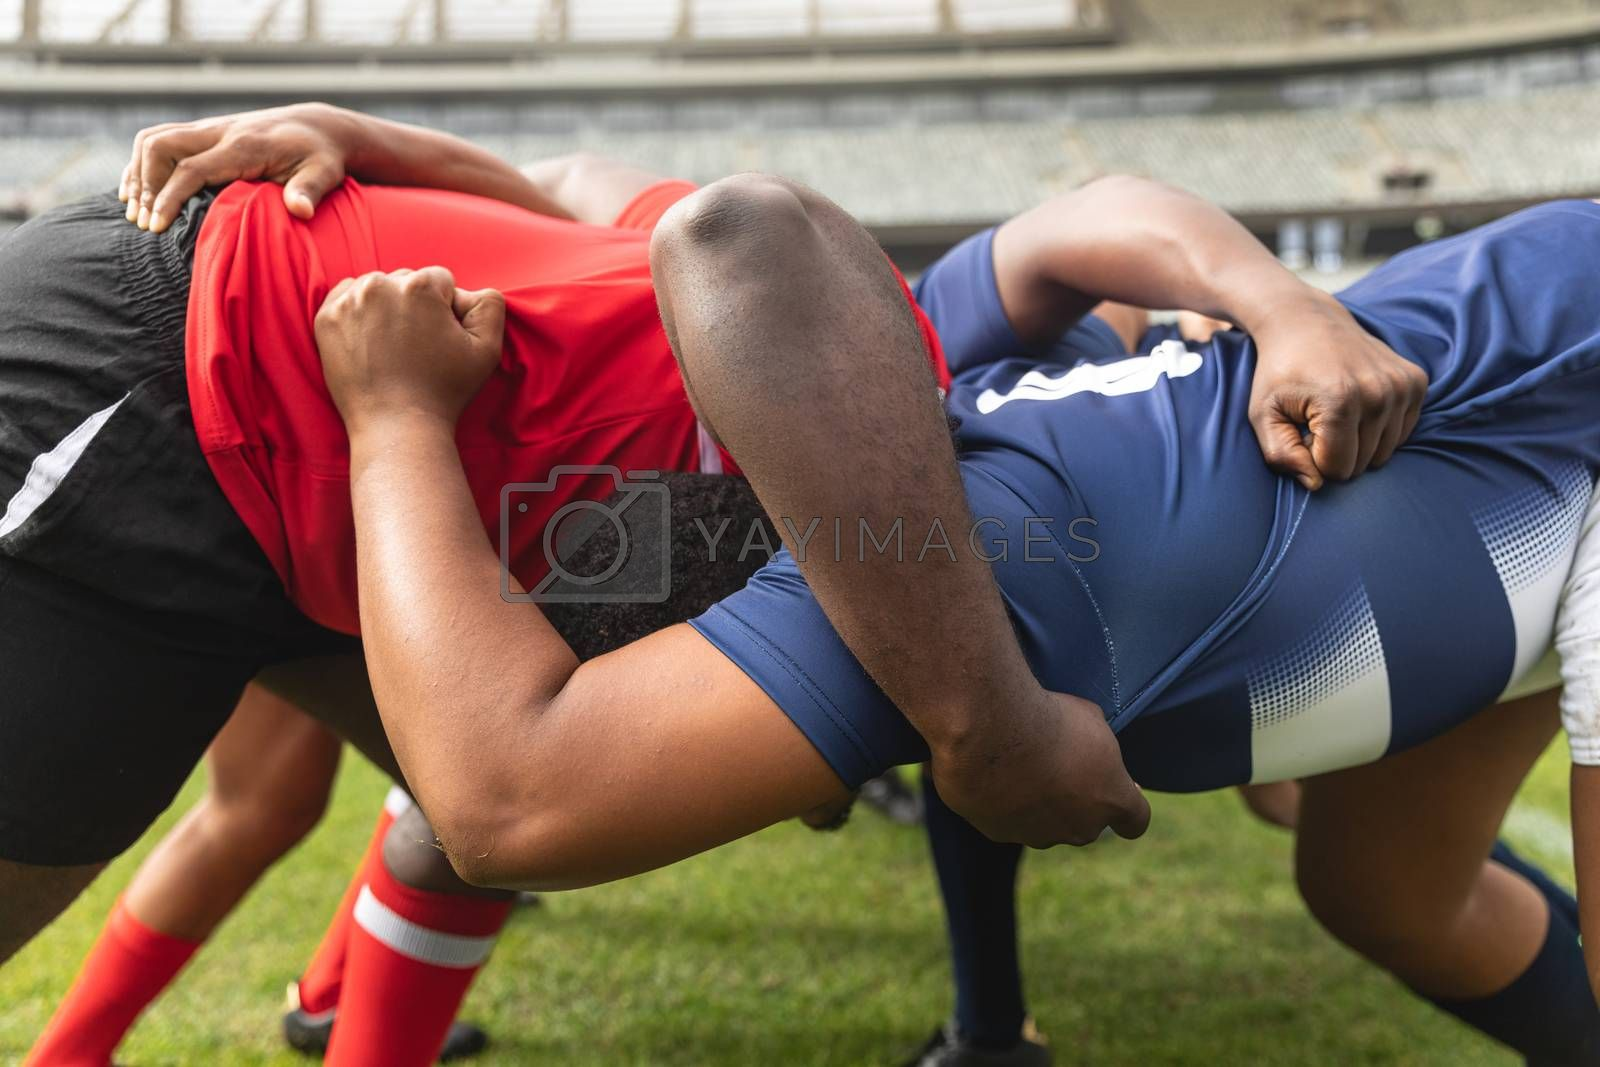 Side view close up of diverse male rugby players playing rugby match in stadium.